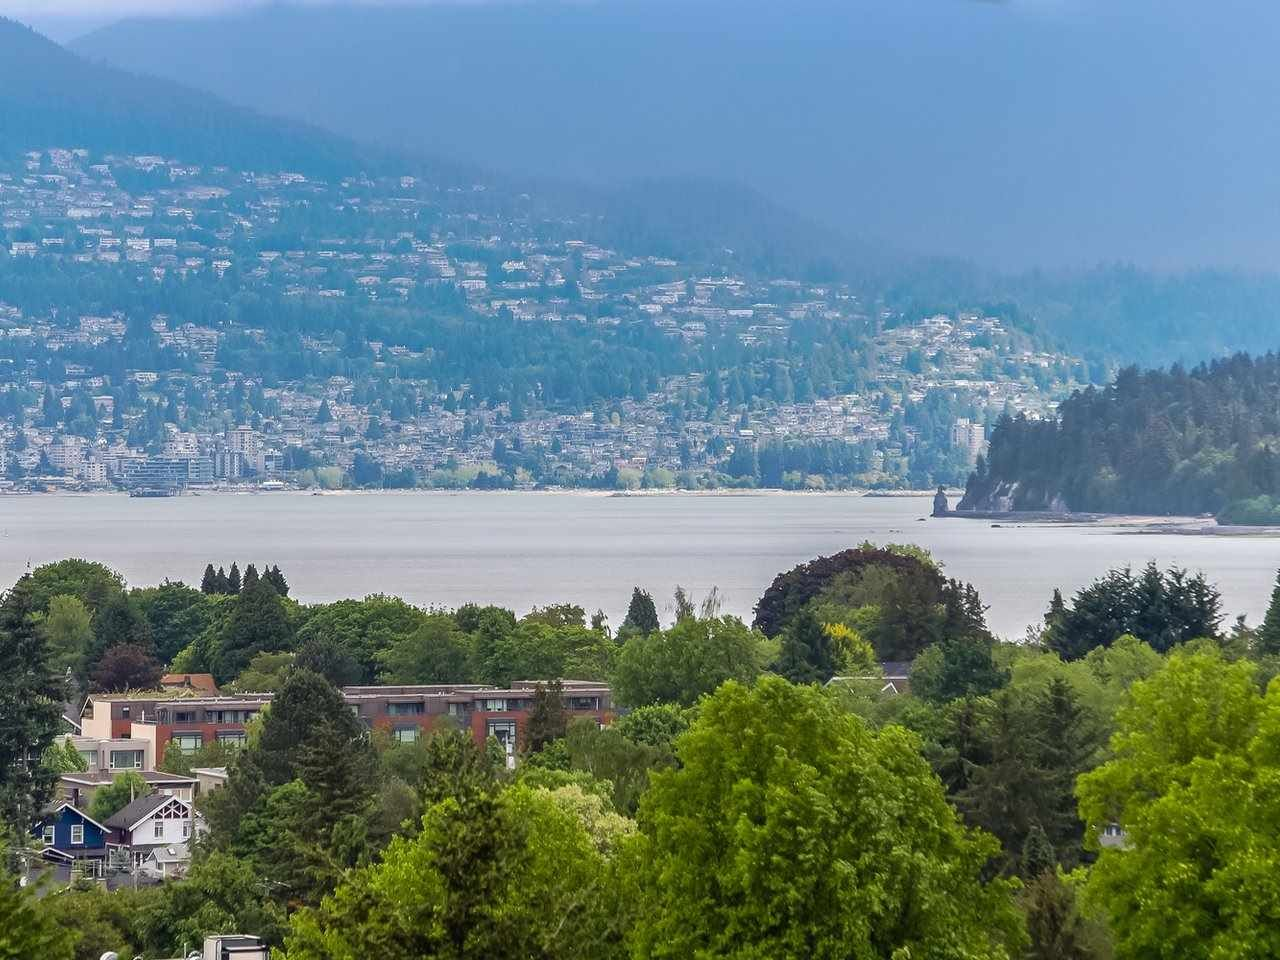 Main Photo: 3749 W 14TH Avenue in Vancouver: Point Grey House for sale (Vancouver West)  : MLS®# R2273913